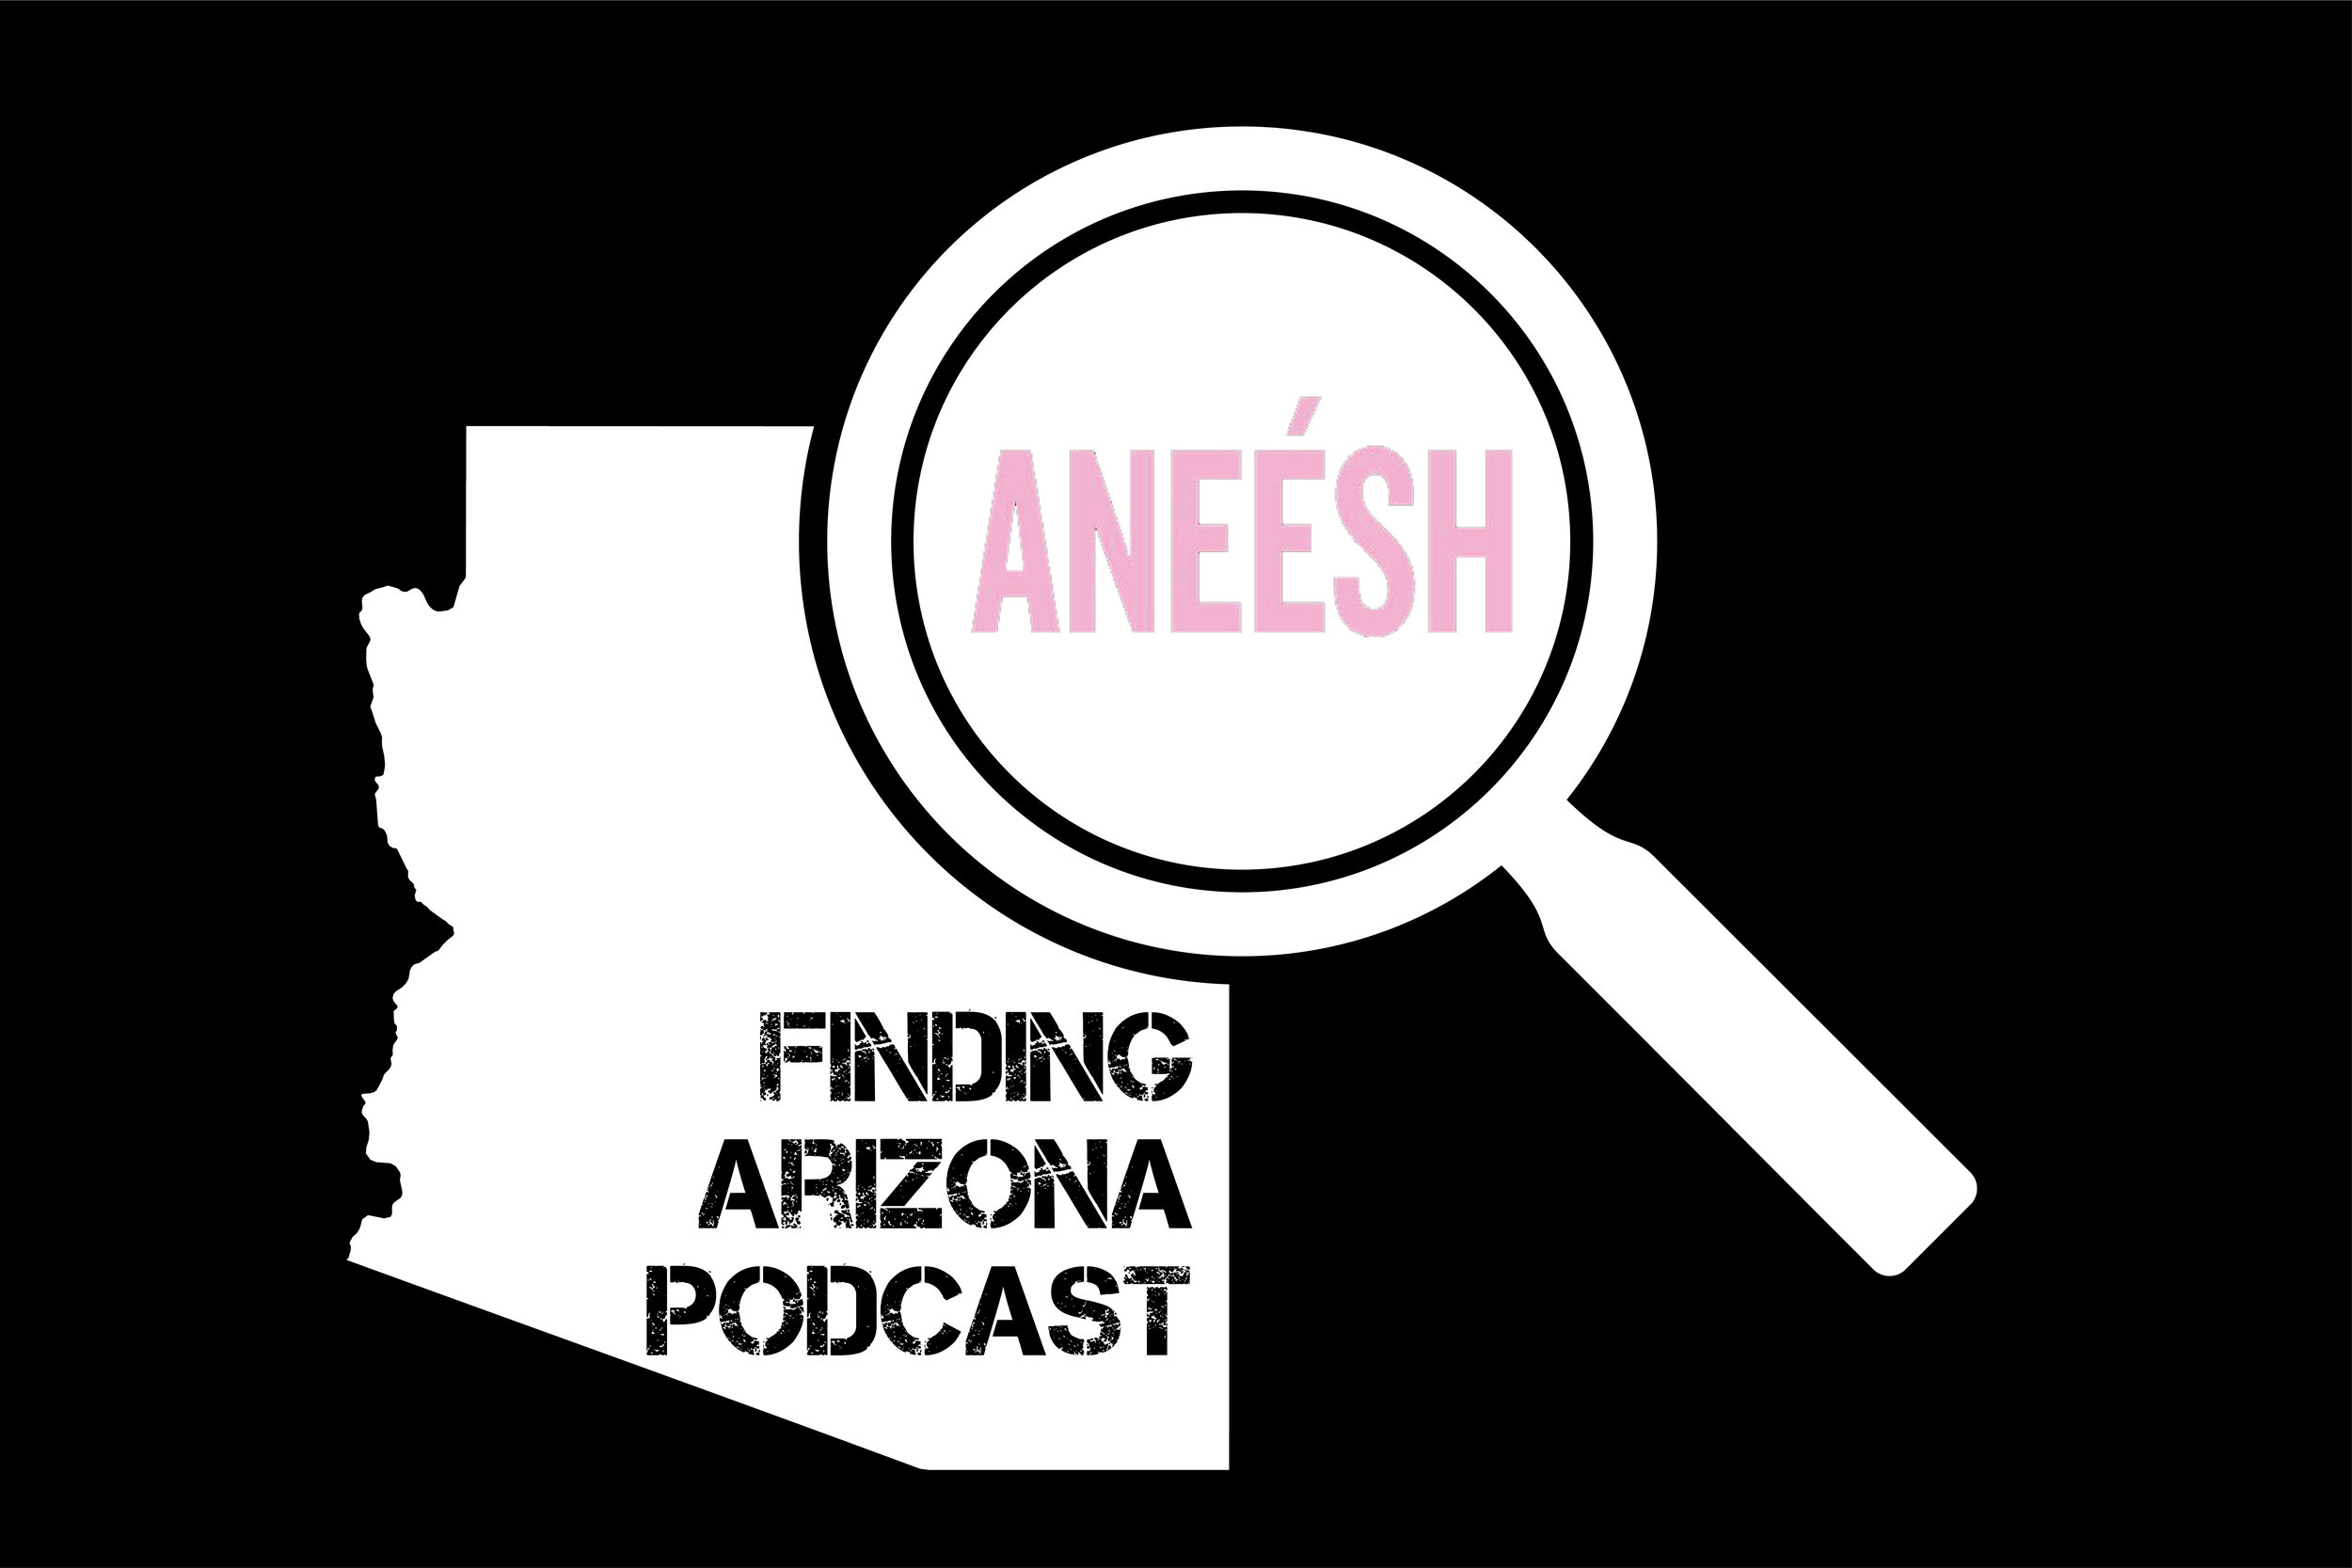 PodCastLogo-annesh.jpg